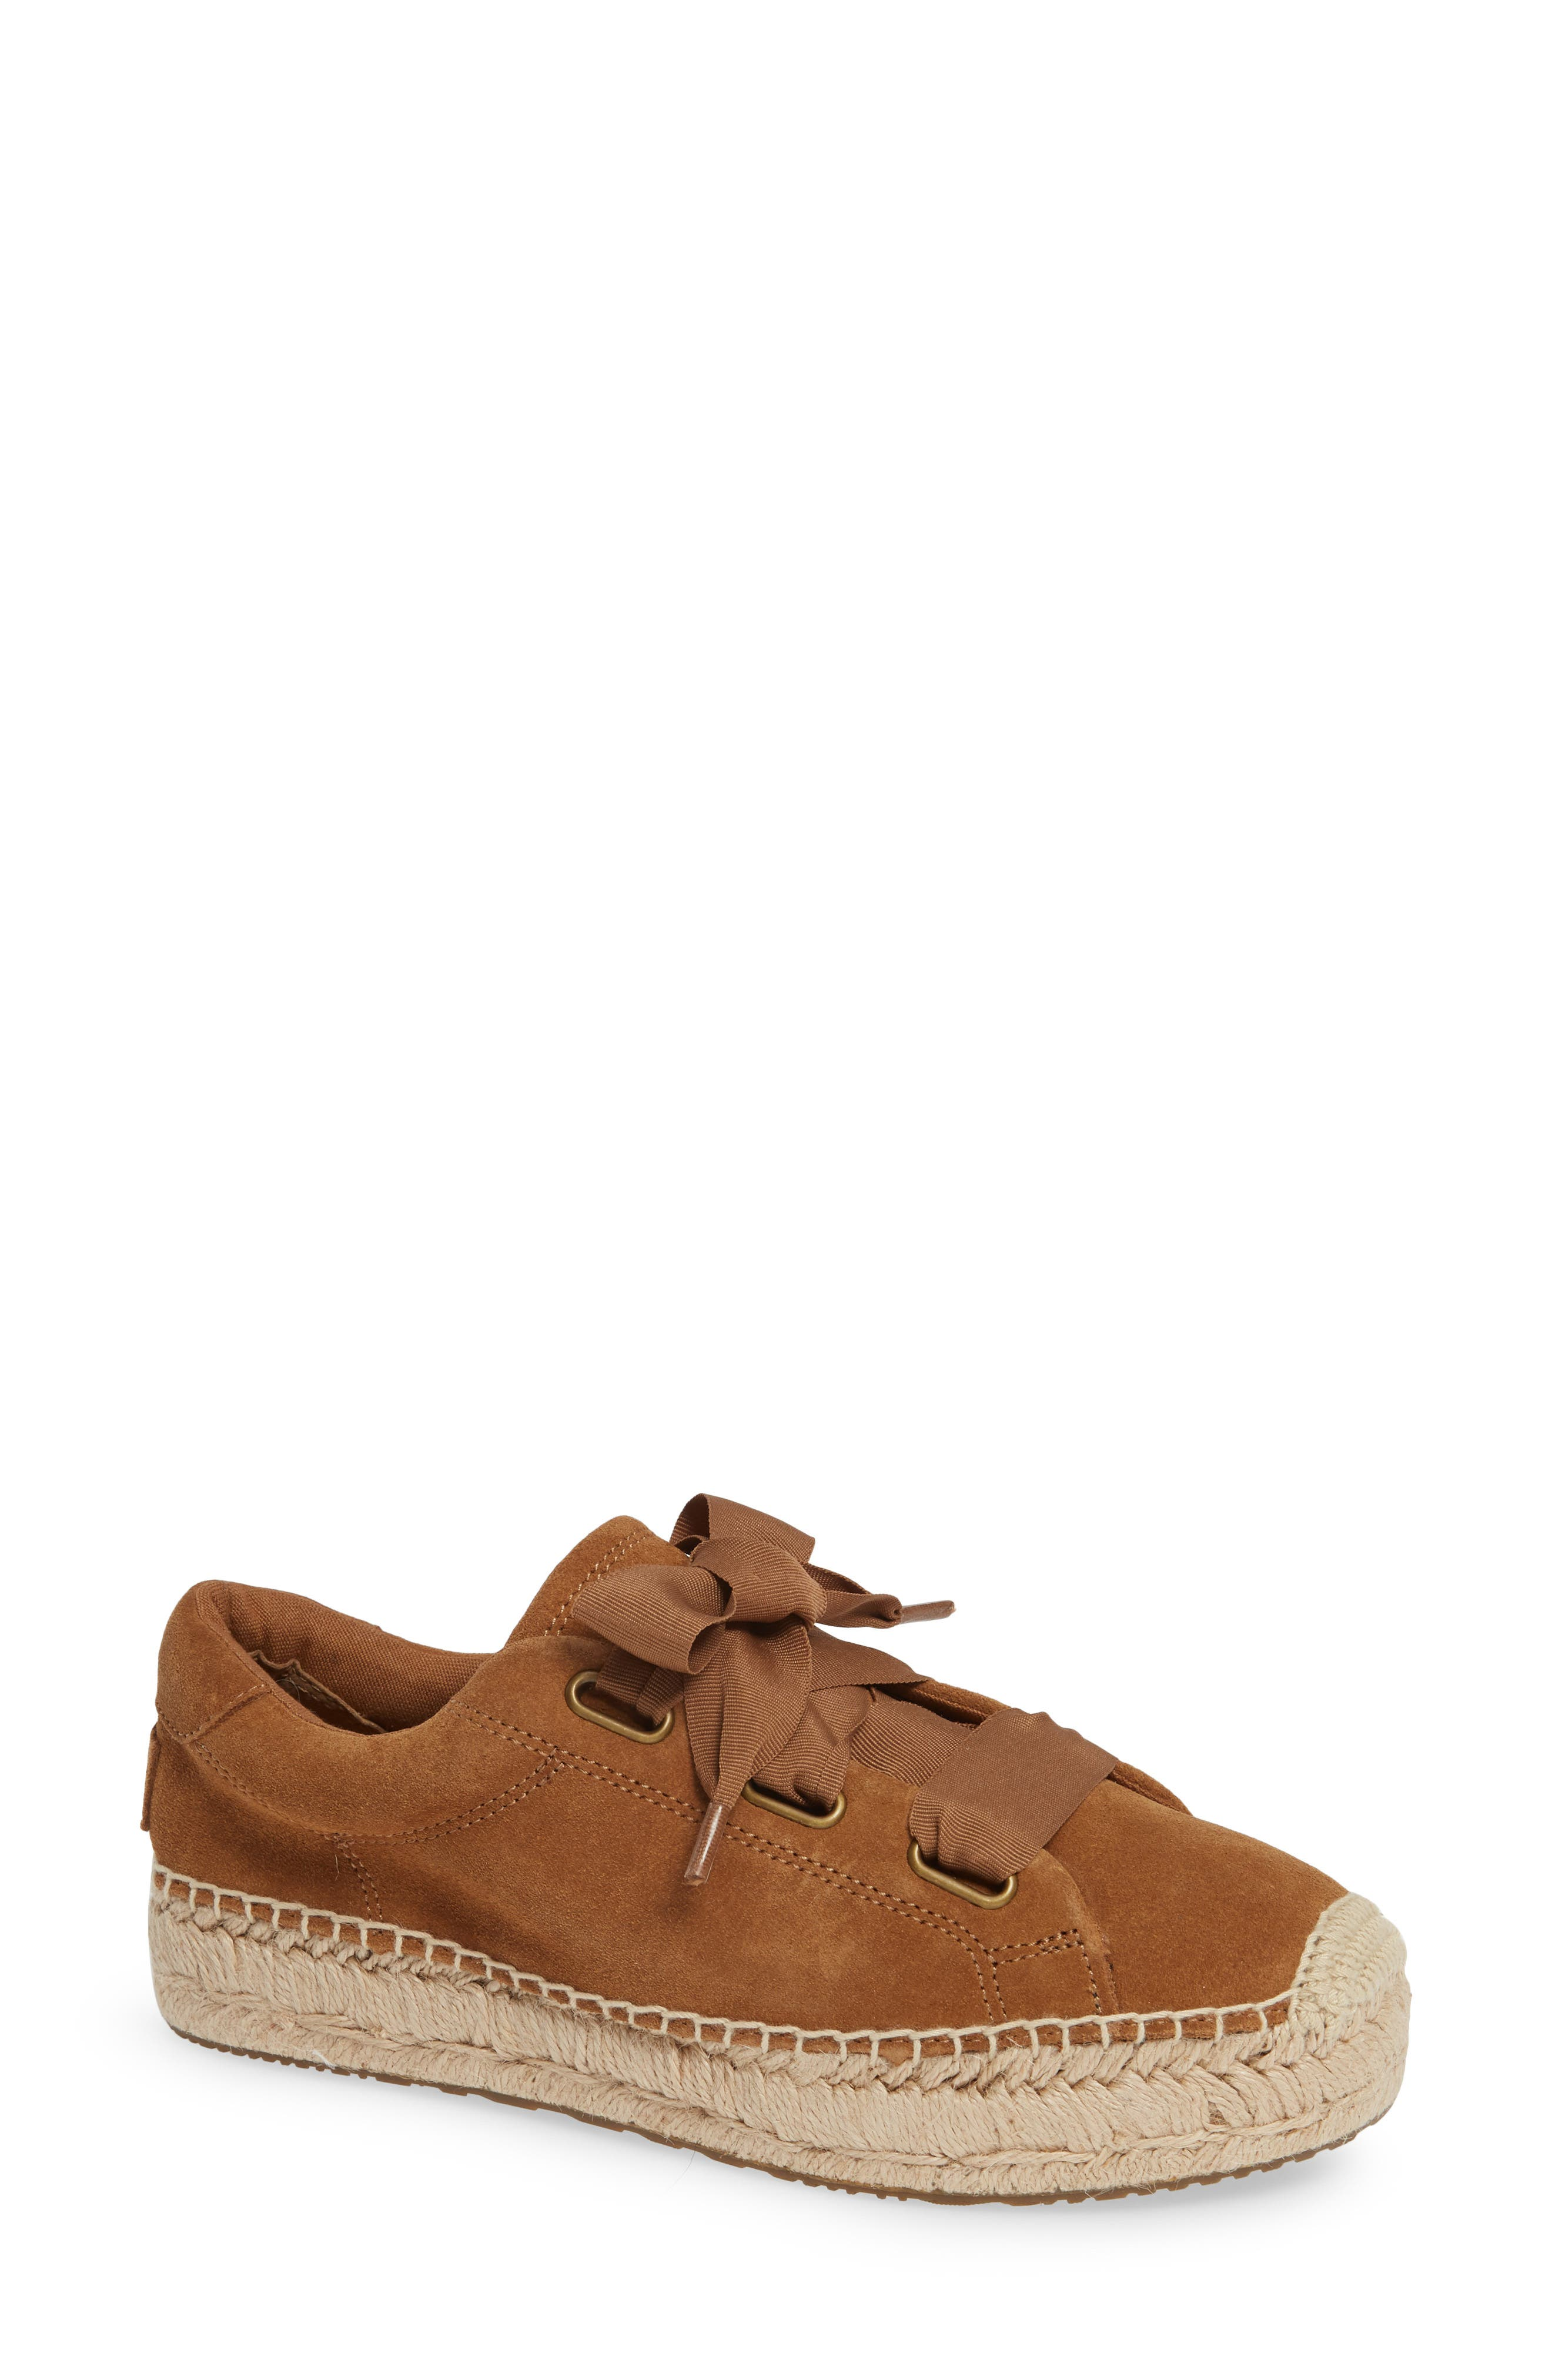 UGG<SUP>®</SUP>, Brianna Sneaker, Main thumbnail 1, color, CHESTNUT SUEDE